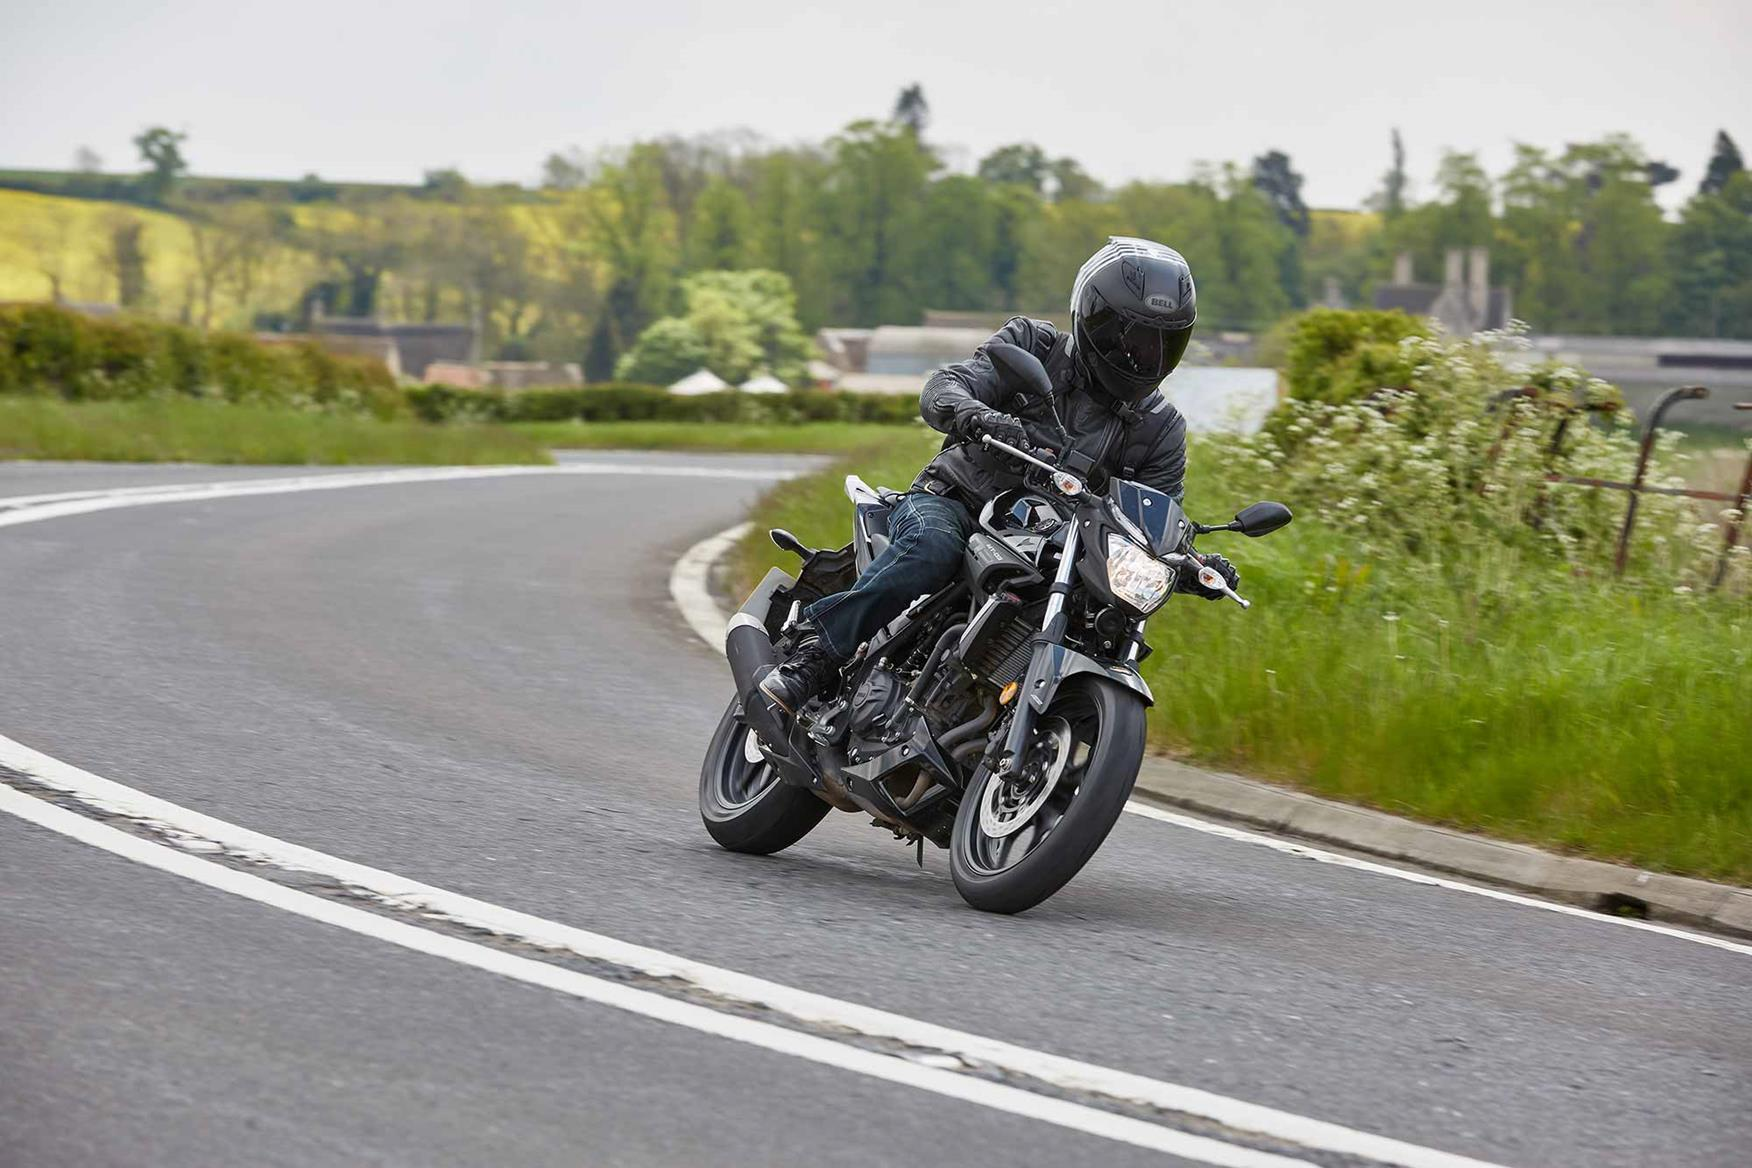 Cornering on a Yamaha MT-03